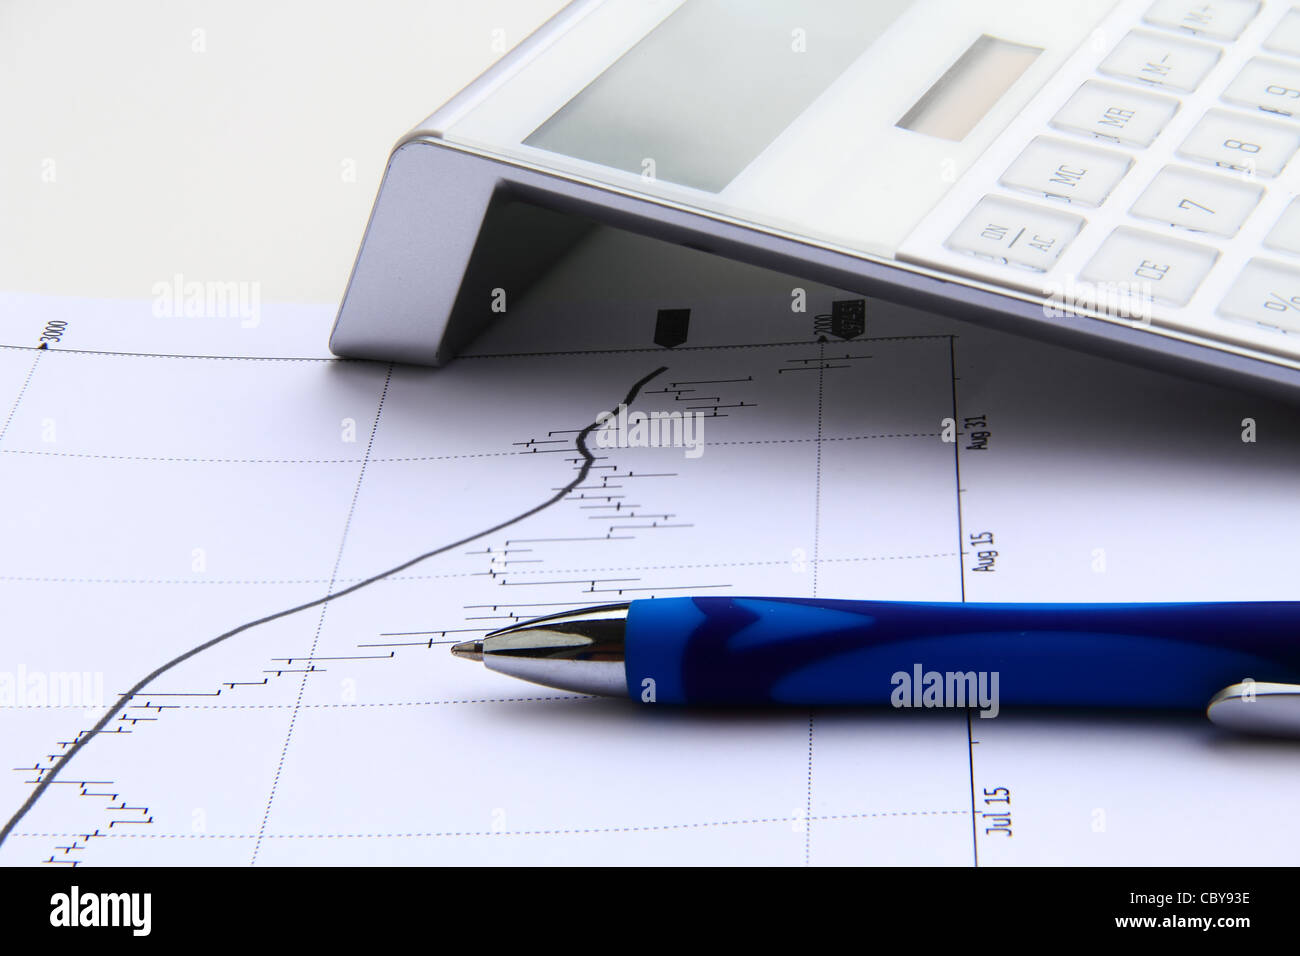 financial chart with solar calculator and blue pen - Stock Image